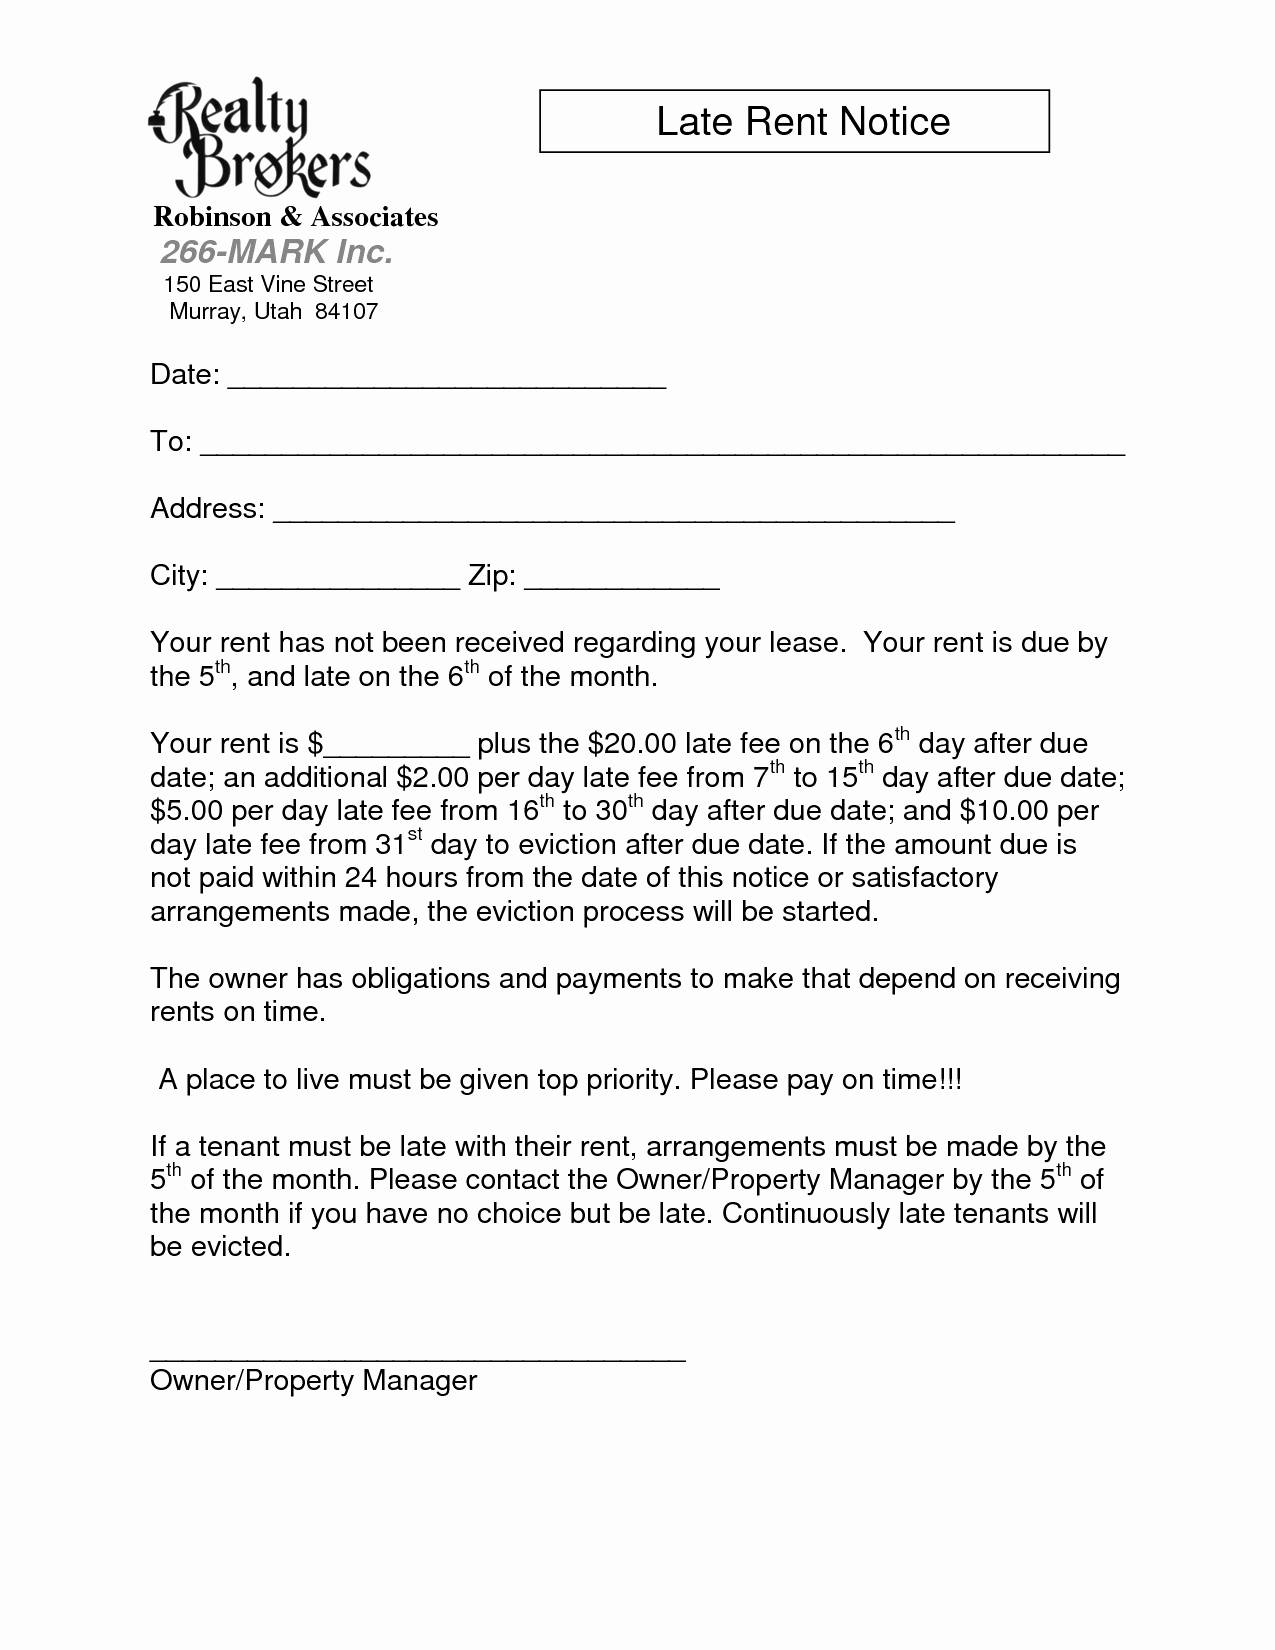 Late Rent Letter Template - Late Rent Notice Template Awesome Kehillaton Kehillaton Resume